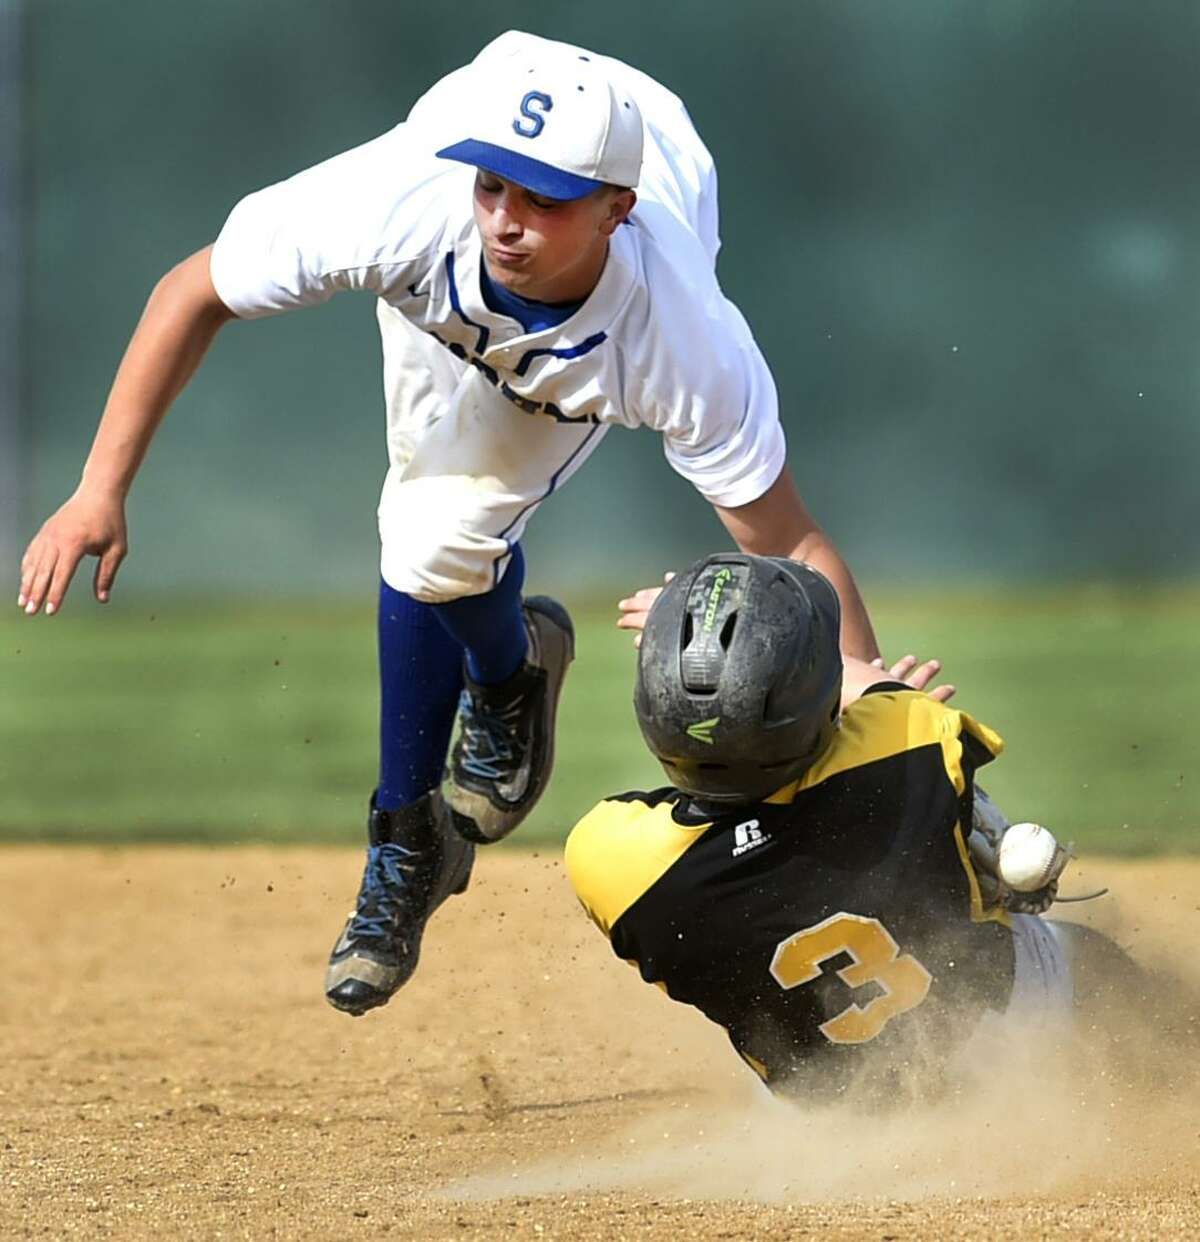 Waterbury, Connecticut - Tuesday, June 3, 2019: Bryce Worth of Southington H.S., left, can't control the ball, left, as Peter Spodnick of Amity H.S. slides into second base during the fifth inning of the CIAC Class LL 2019 State Baseball Tournament Semifinals Tuesday at the Municipal Stadium in Waterbury. Southington H.S. defeated Amity H.S. 3-2.